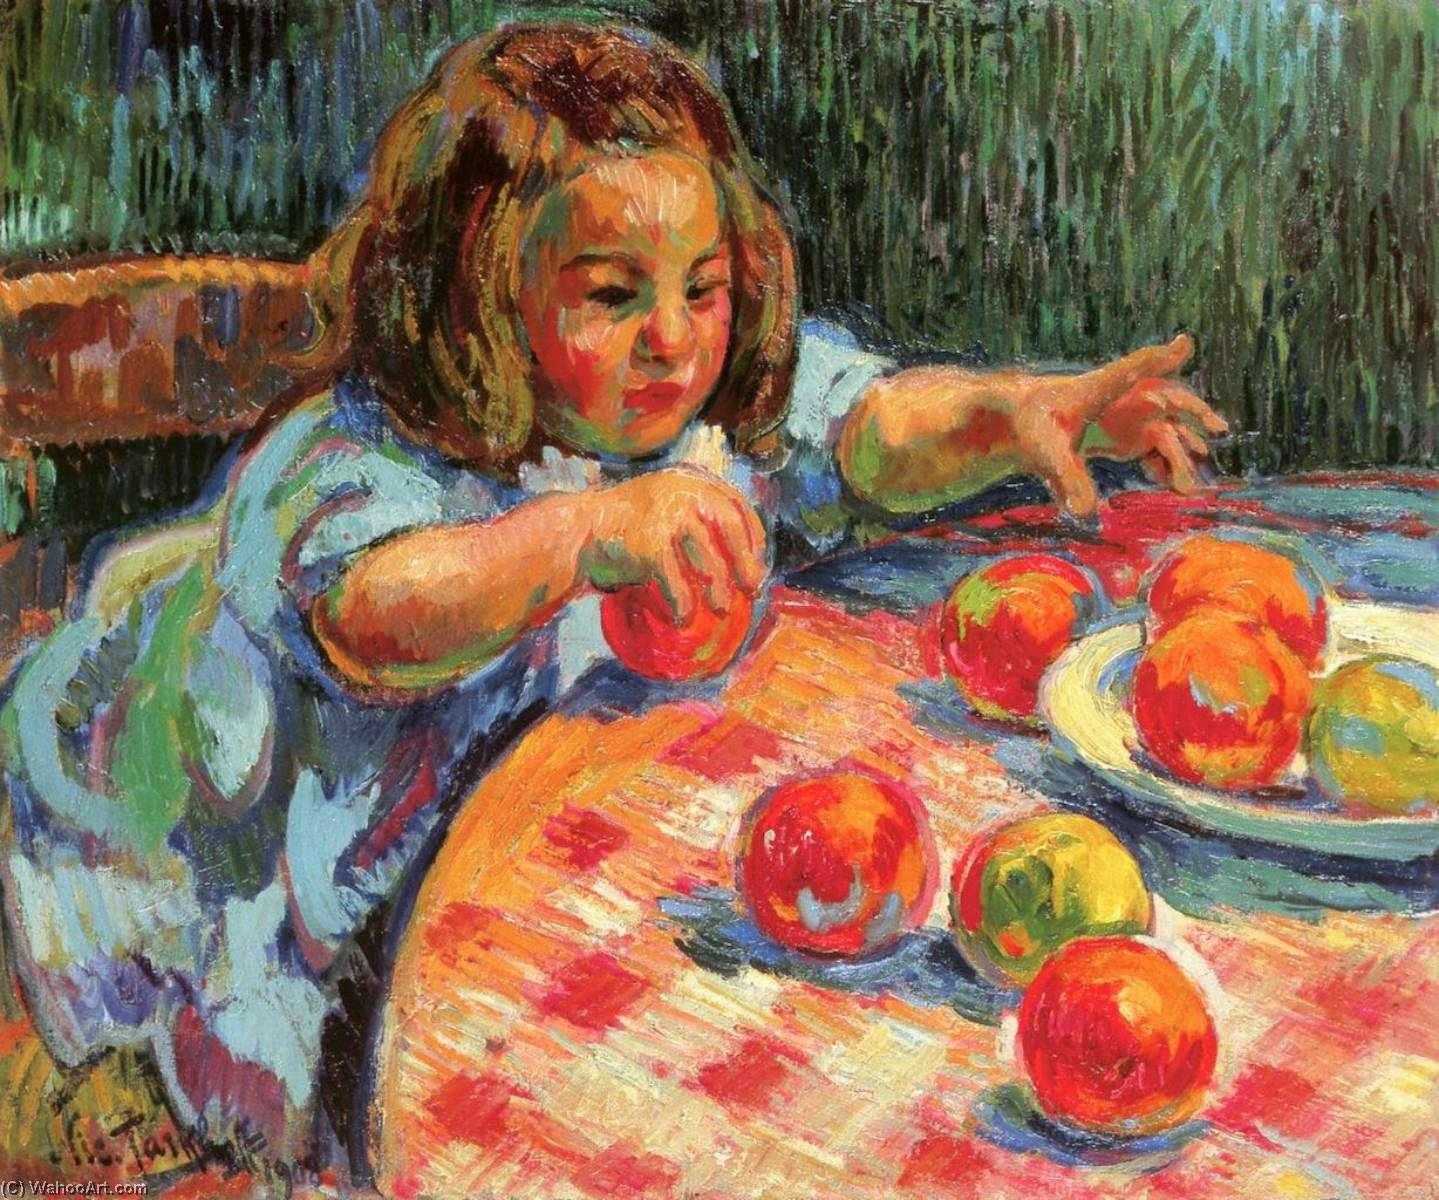 Jean, Son of the Artist, Playing with Apples, 1908 by Nicolas Tarkhoff (1871-1930) | Art Reproduction | WahooArt.com